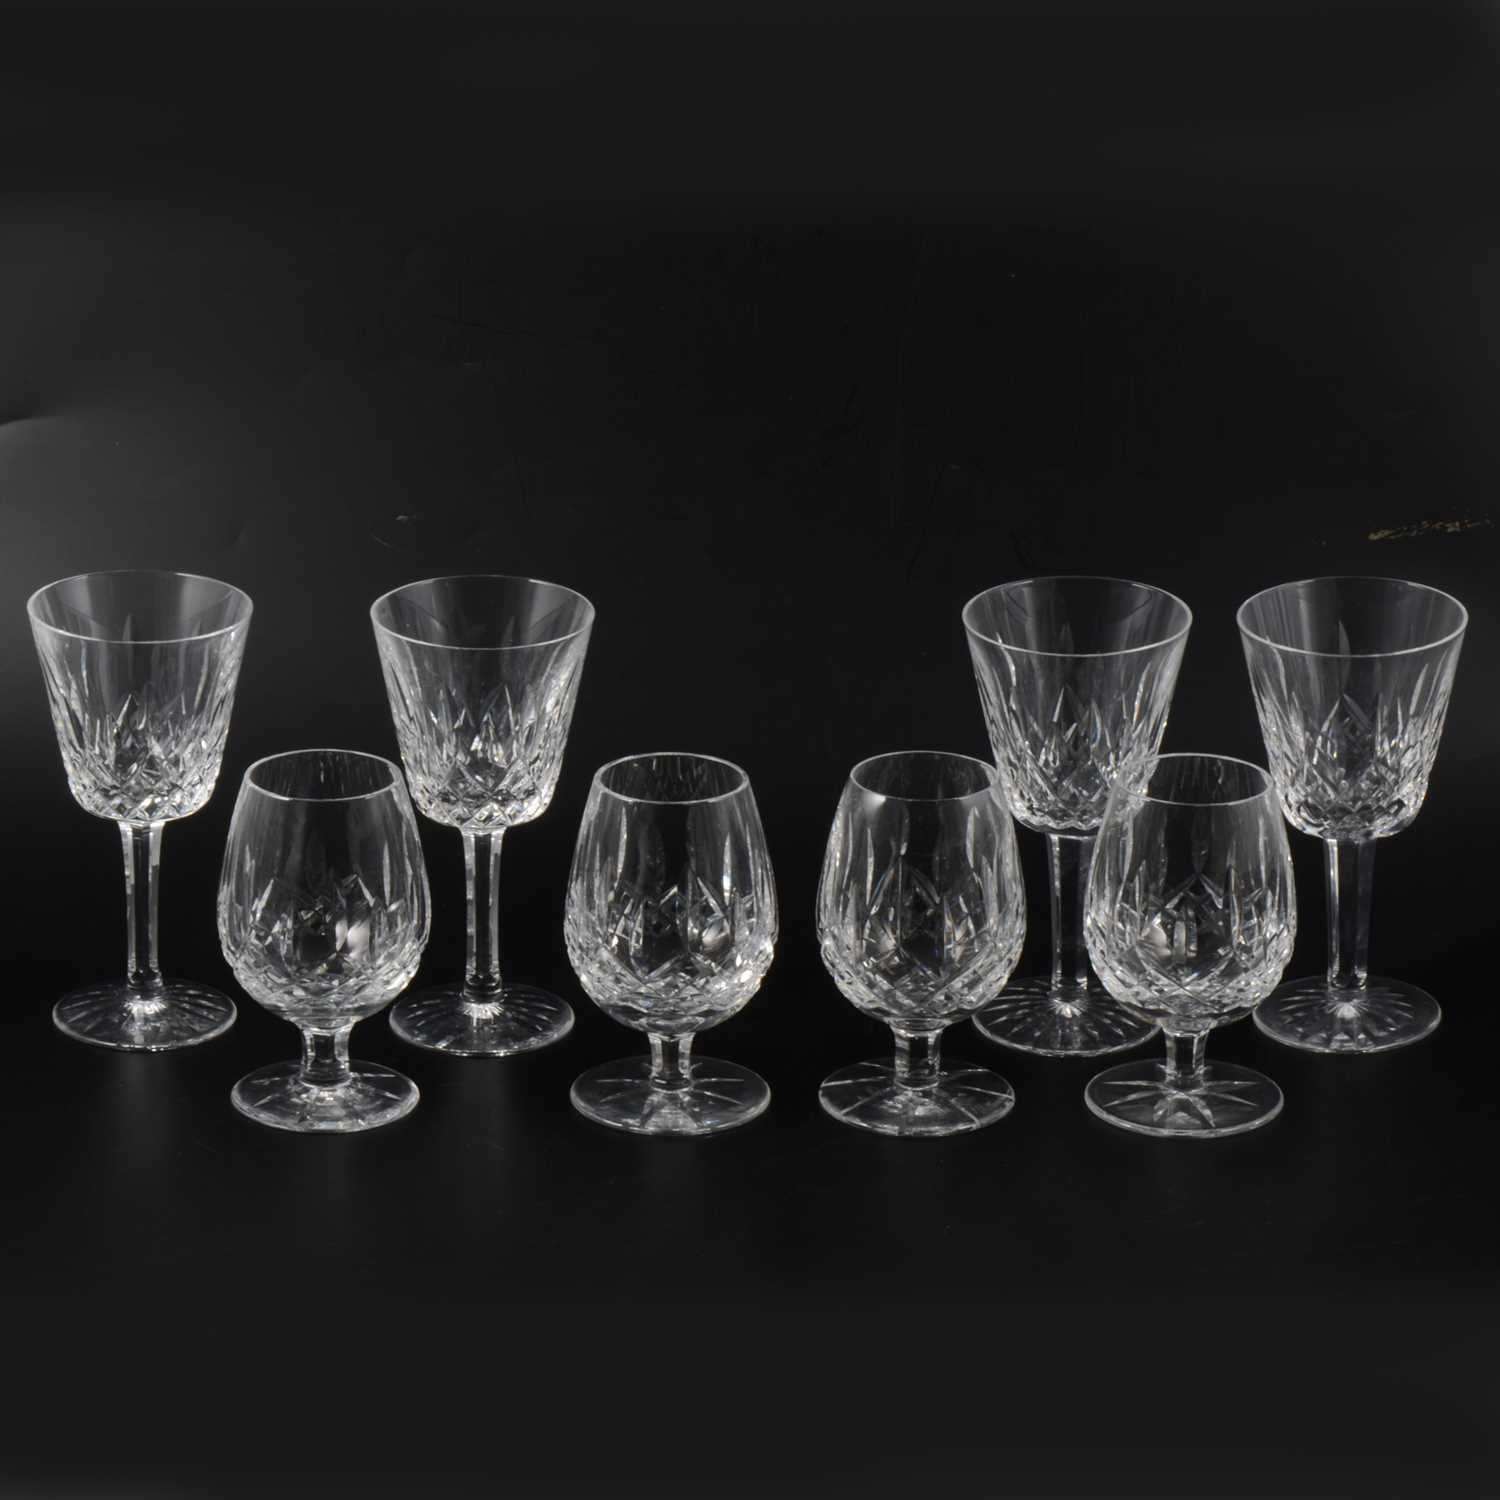 Lot 43-Seven Waterford crystal wine glasses, 15cm; and six Waterford brandy glasses